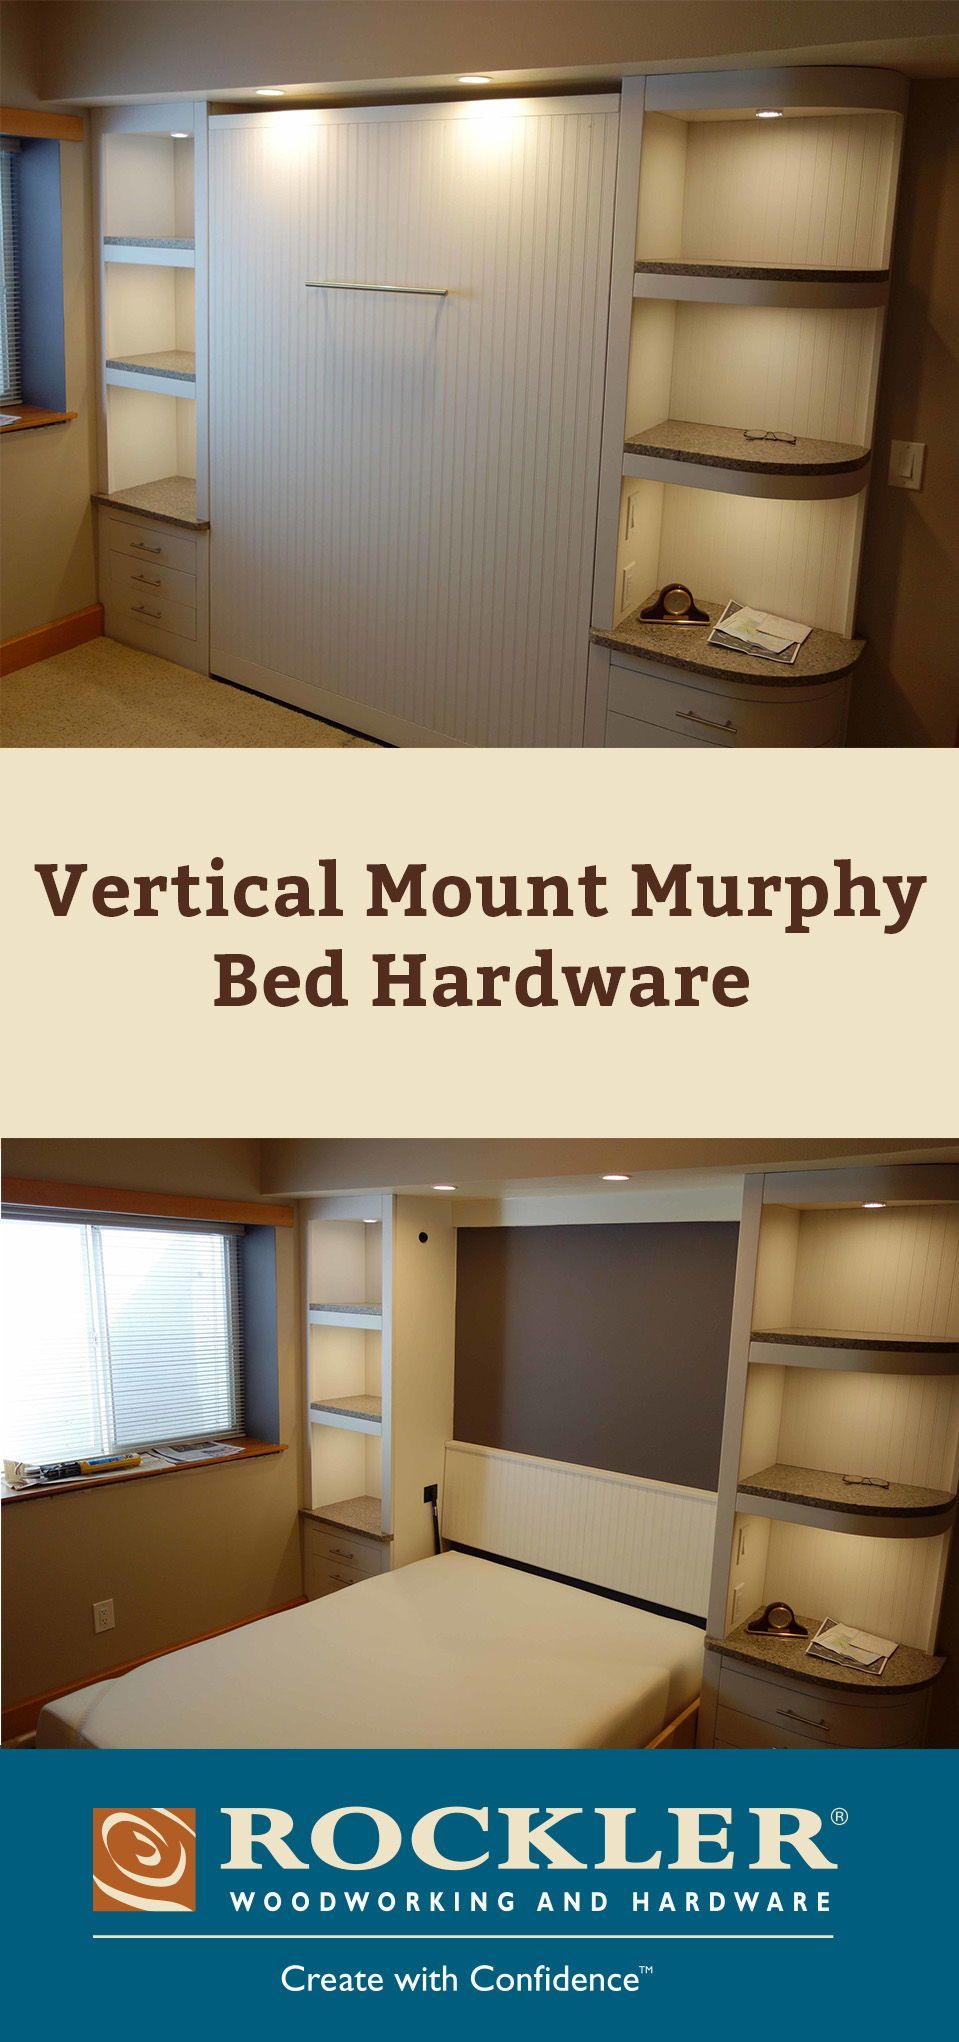 Vertical Mount Murphy Bed Hardware  A Fold Down Bed